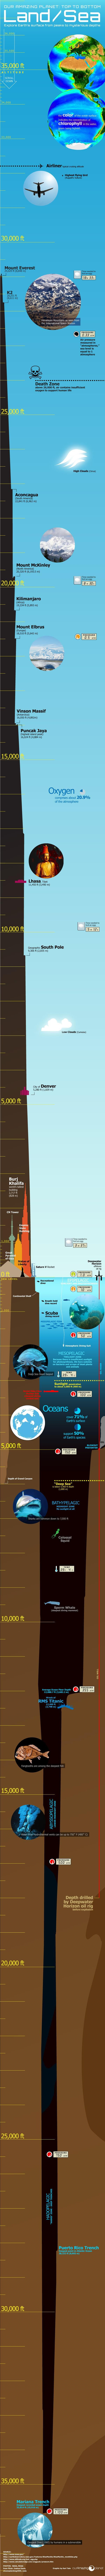 This is a really cool way to see the vastness of our planet: Our Amazing Planet: Top to Bottom: By Karl Tate.: Funny Pictures, The Ocean, Saltwater Tank, Infographic, Info Graphics, Mount Everest, Marianas Trench, Planets Earth, Ocean Depth